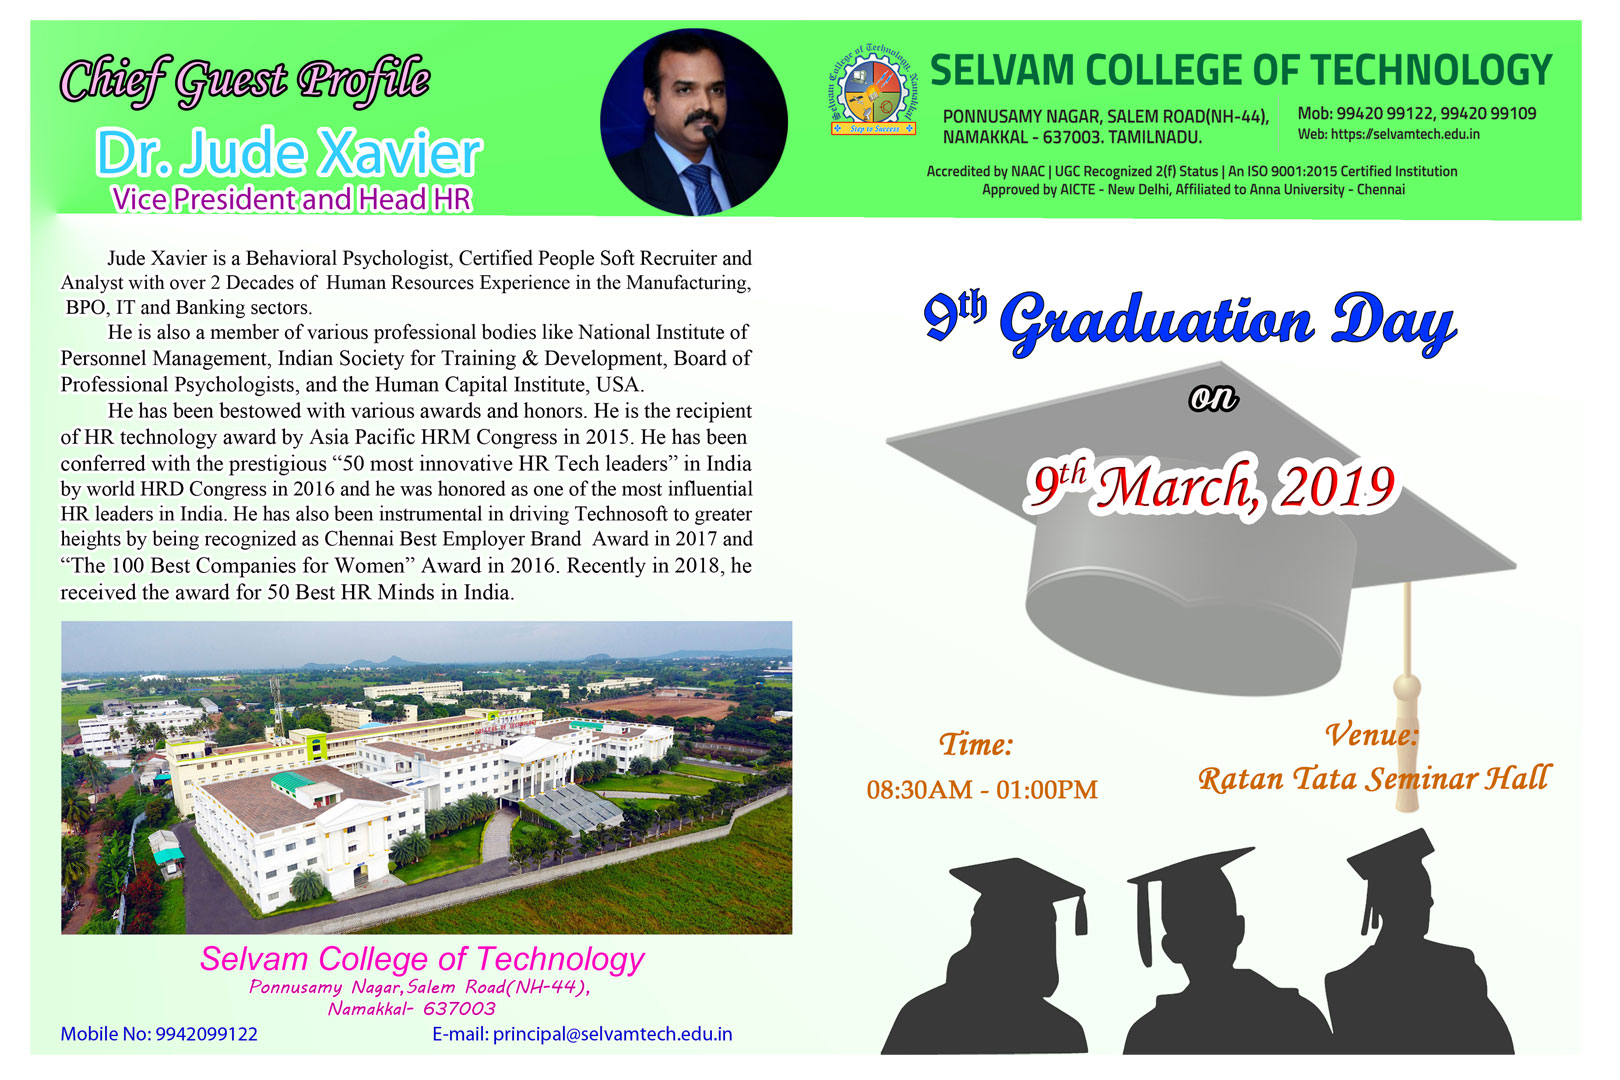 9th Graduation Ceremony will be held on 9th March 2019. 1